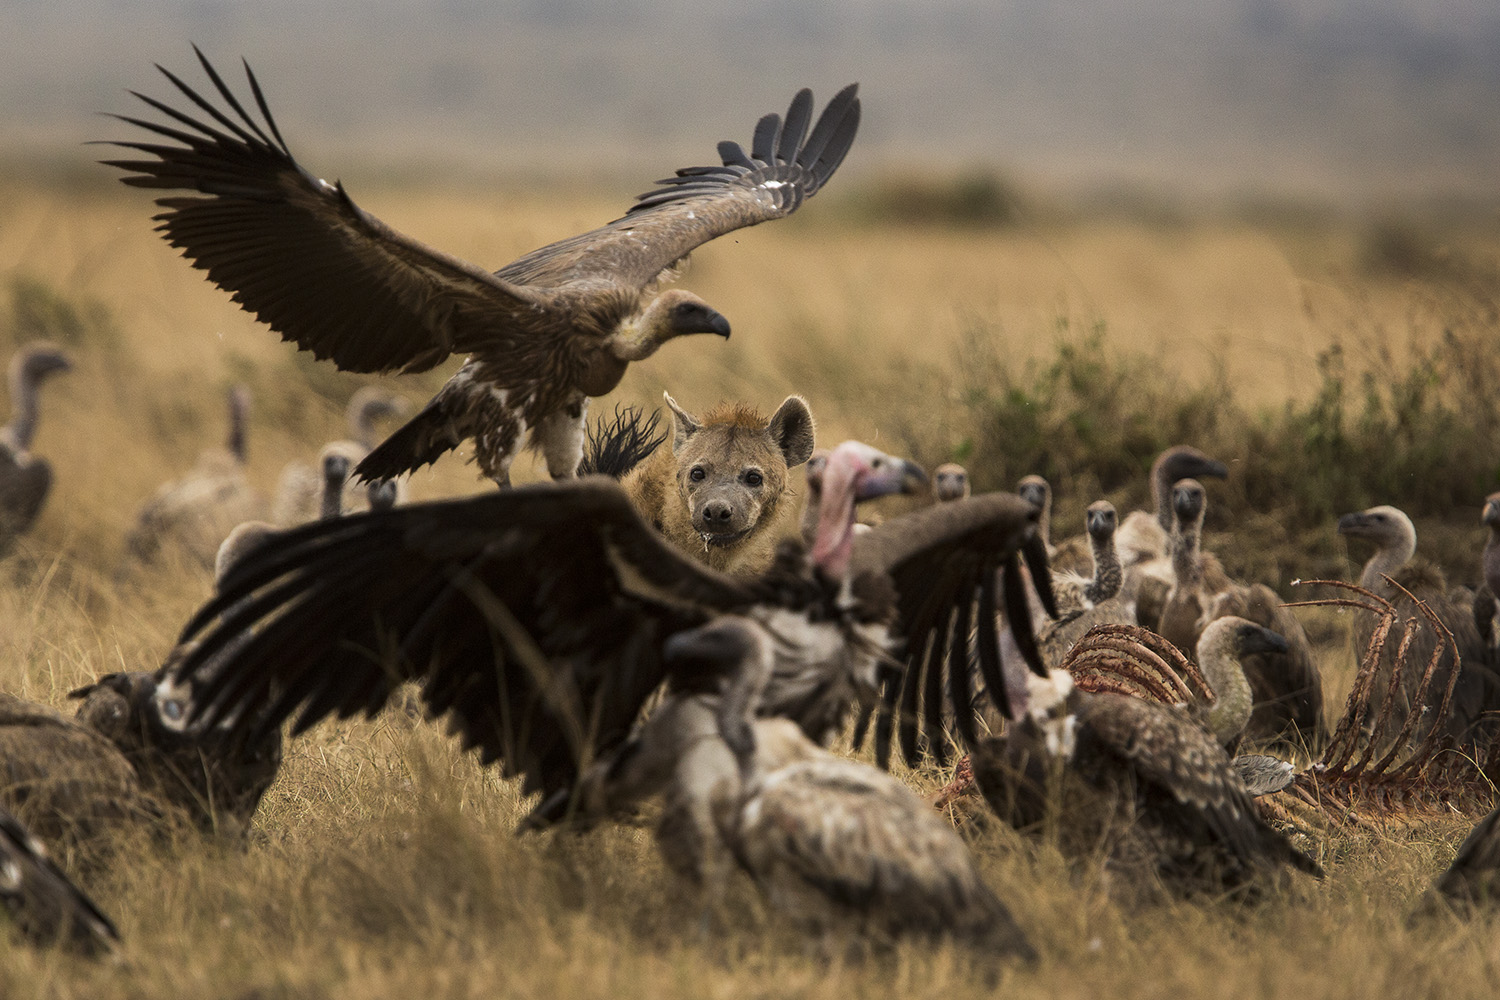 Hyena face and vultures